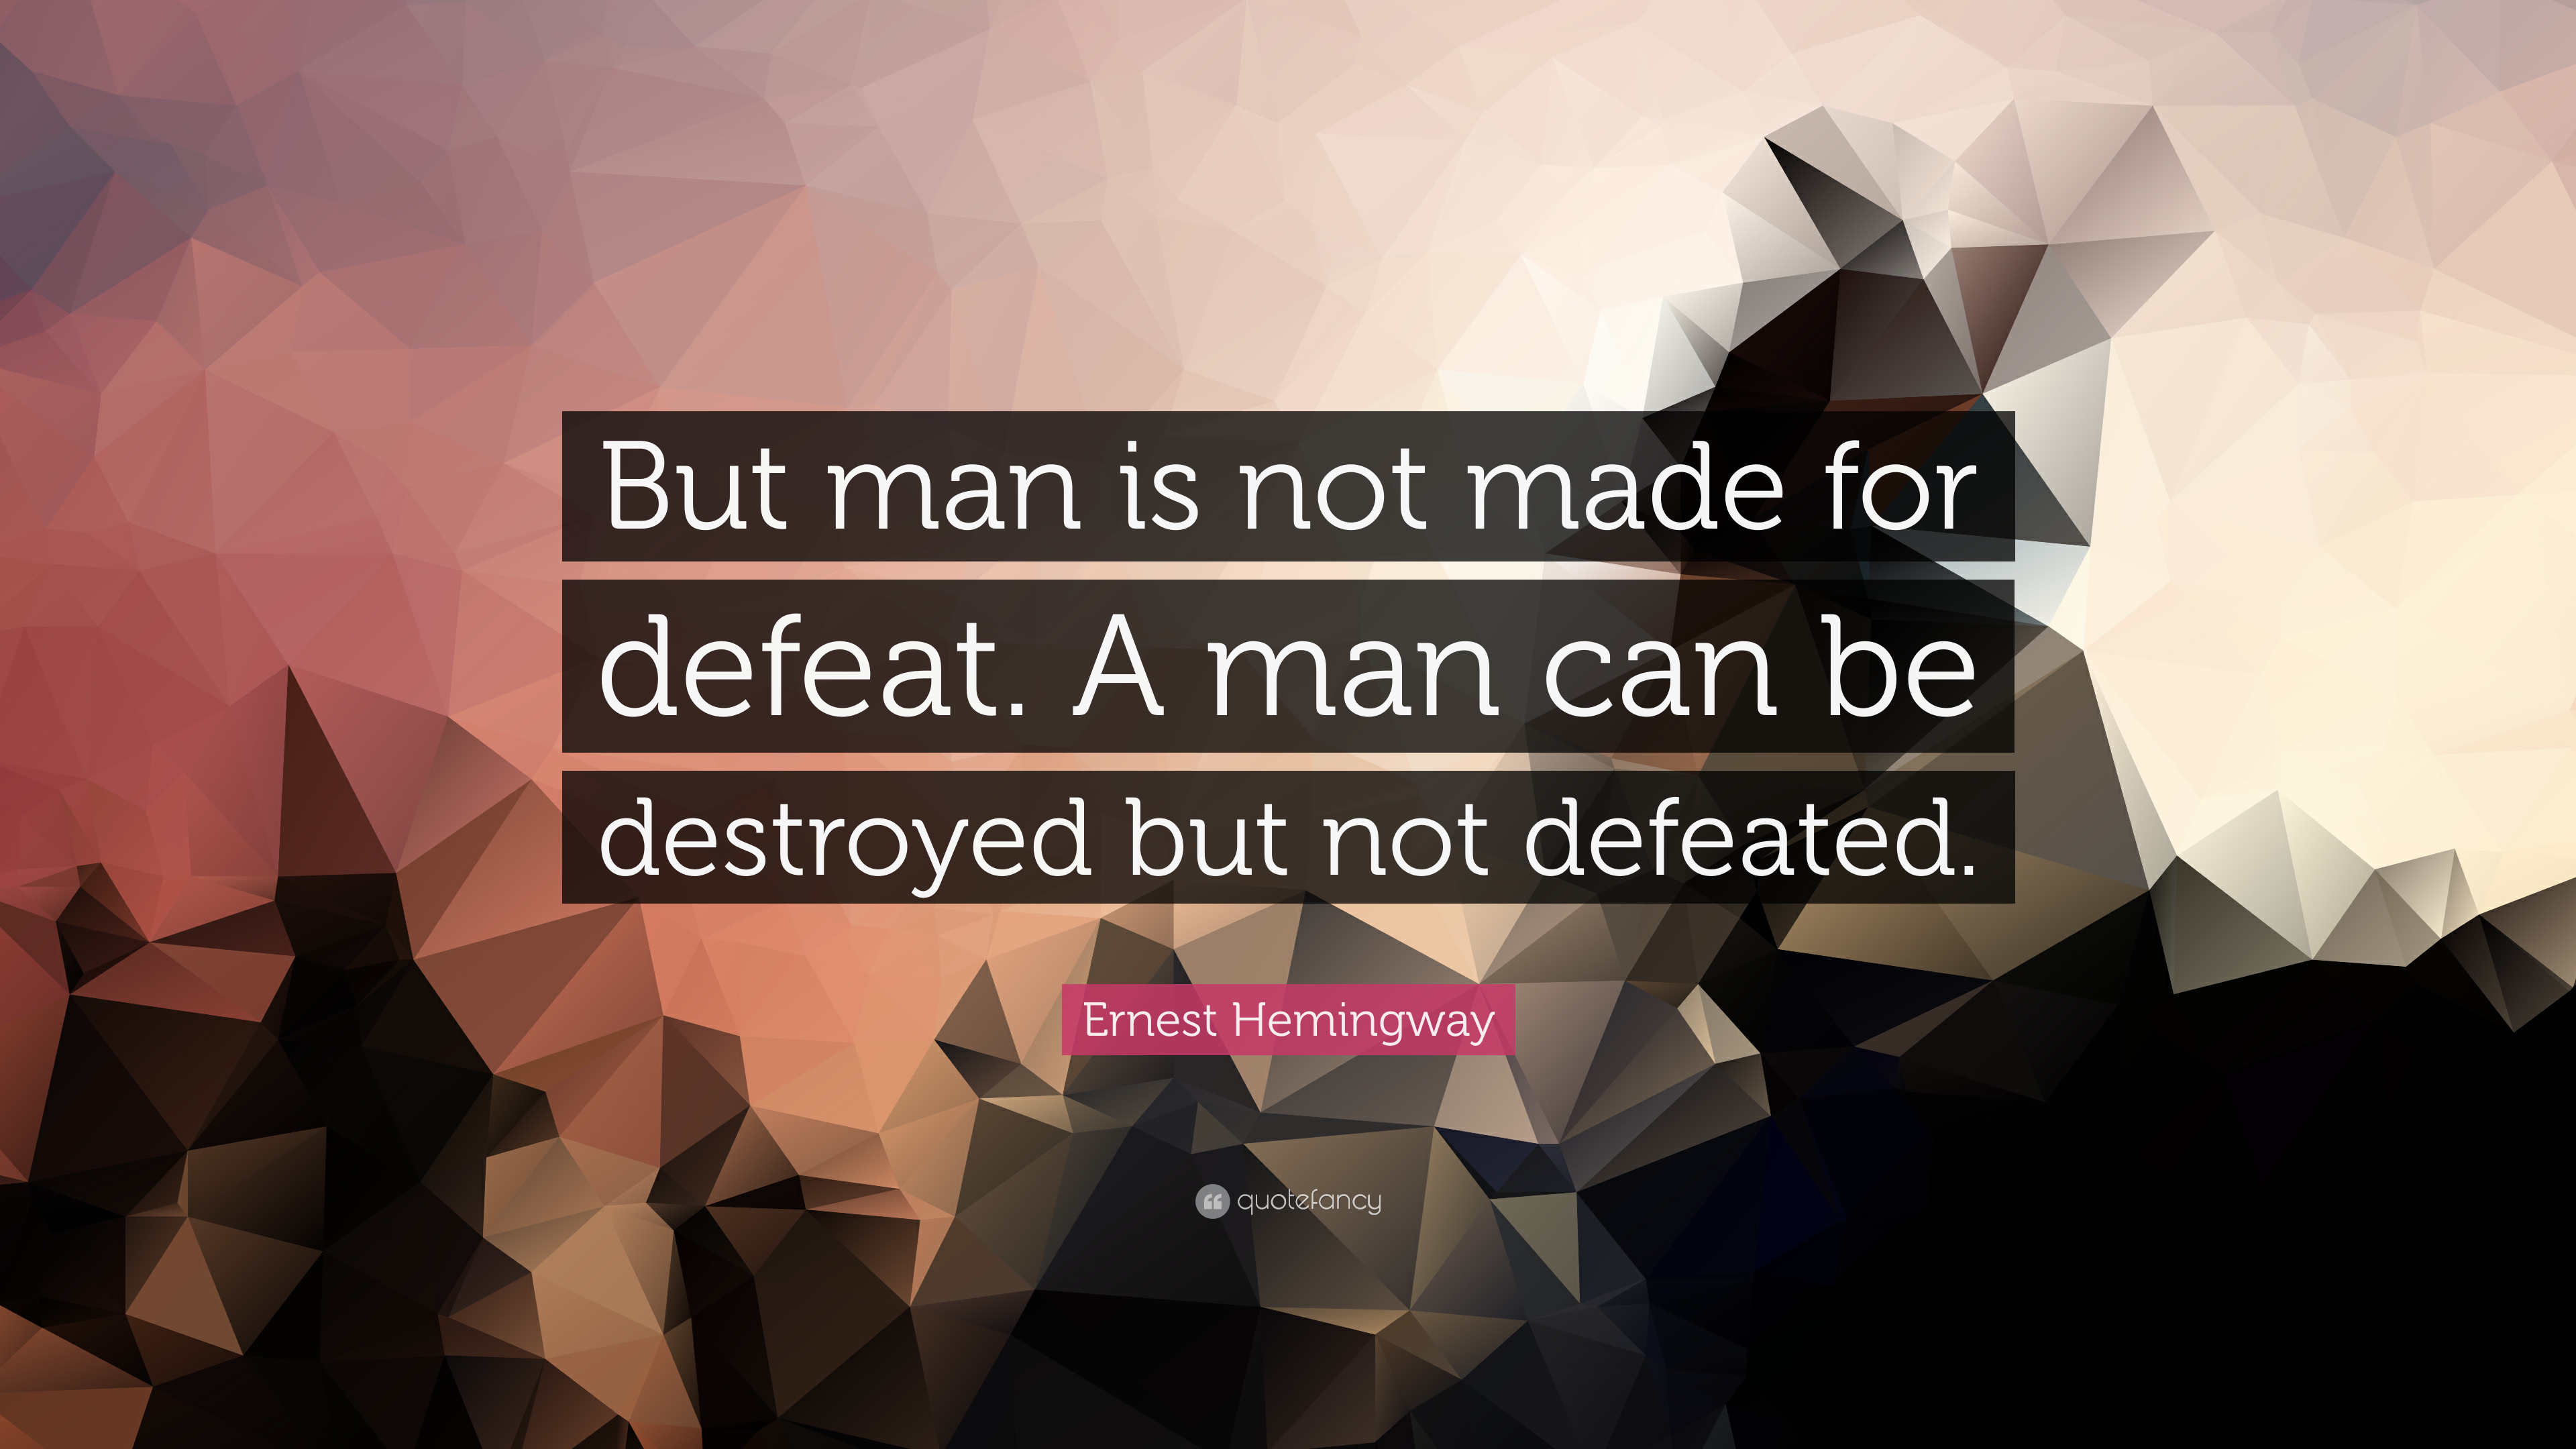 """a man can be destroyed but not defeated essay Hemingway's quote """"a man can be destroyed but not defeated"""" truly does display the amount of determination that santiago shows throughout his life winning facet visualization click a word to display highlight data."""